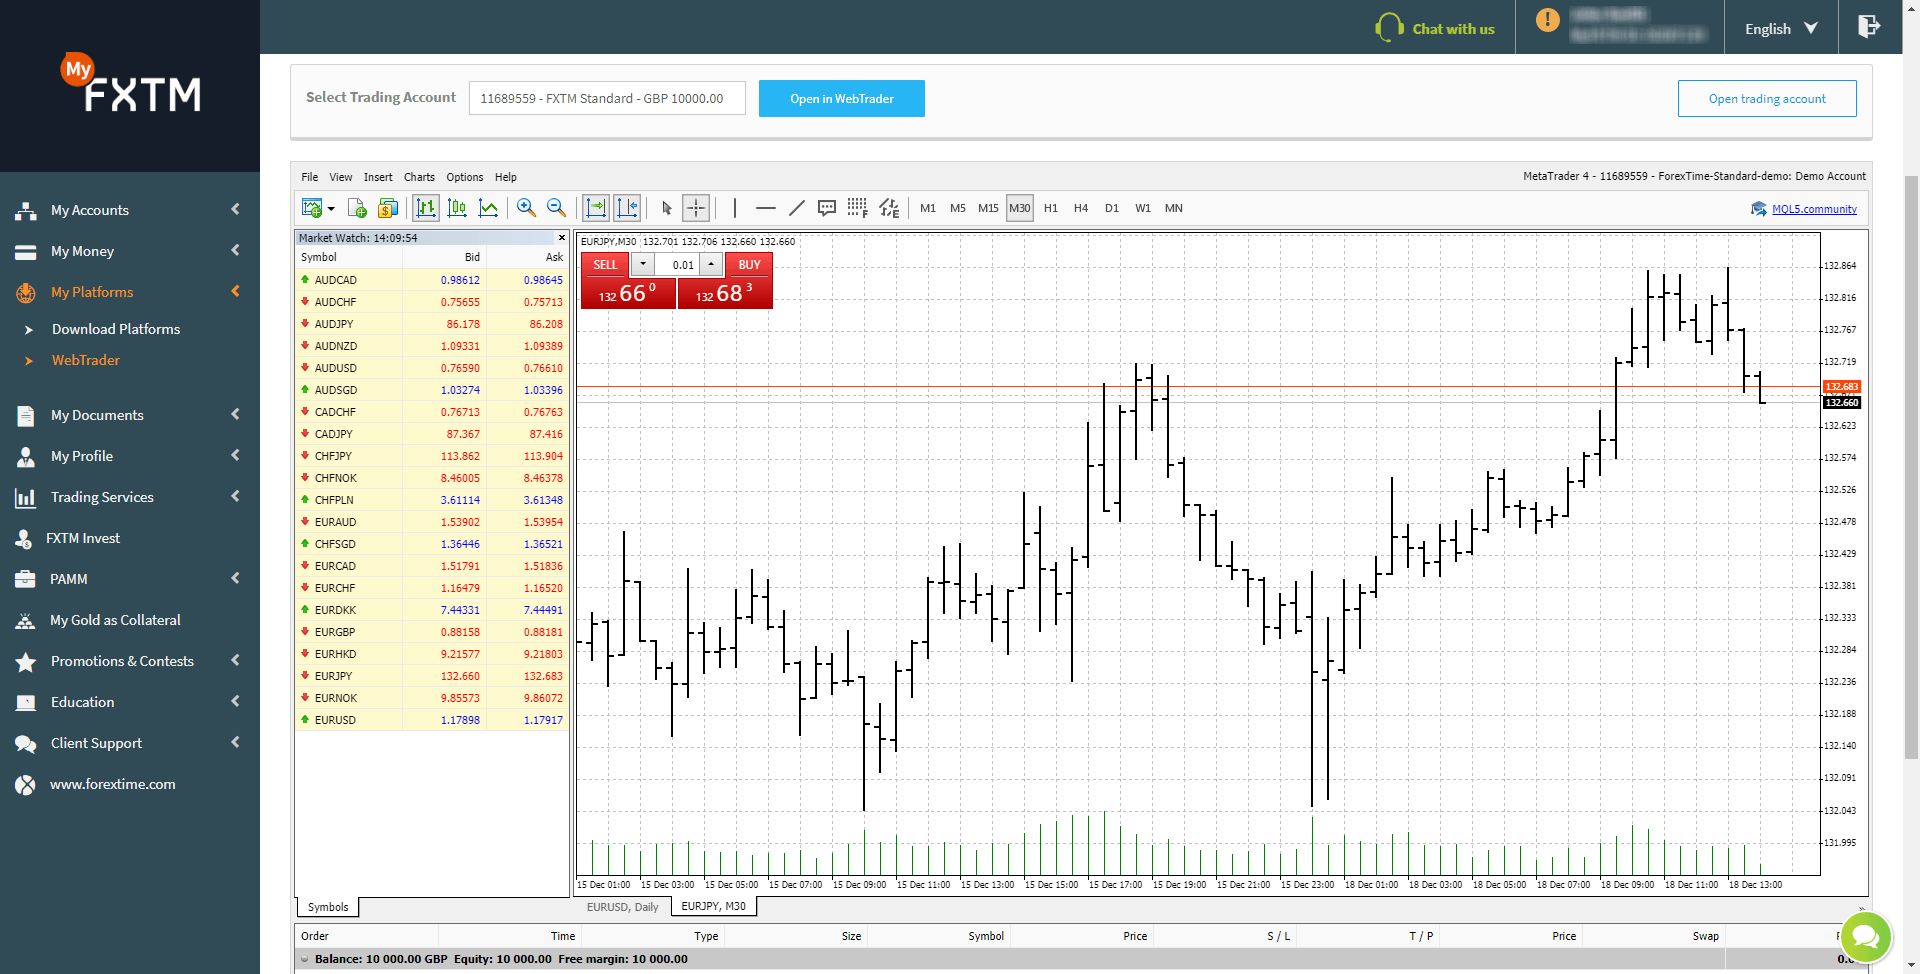 FXTM Screenshot